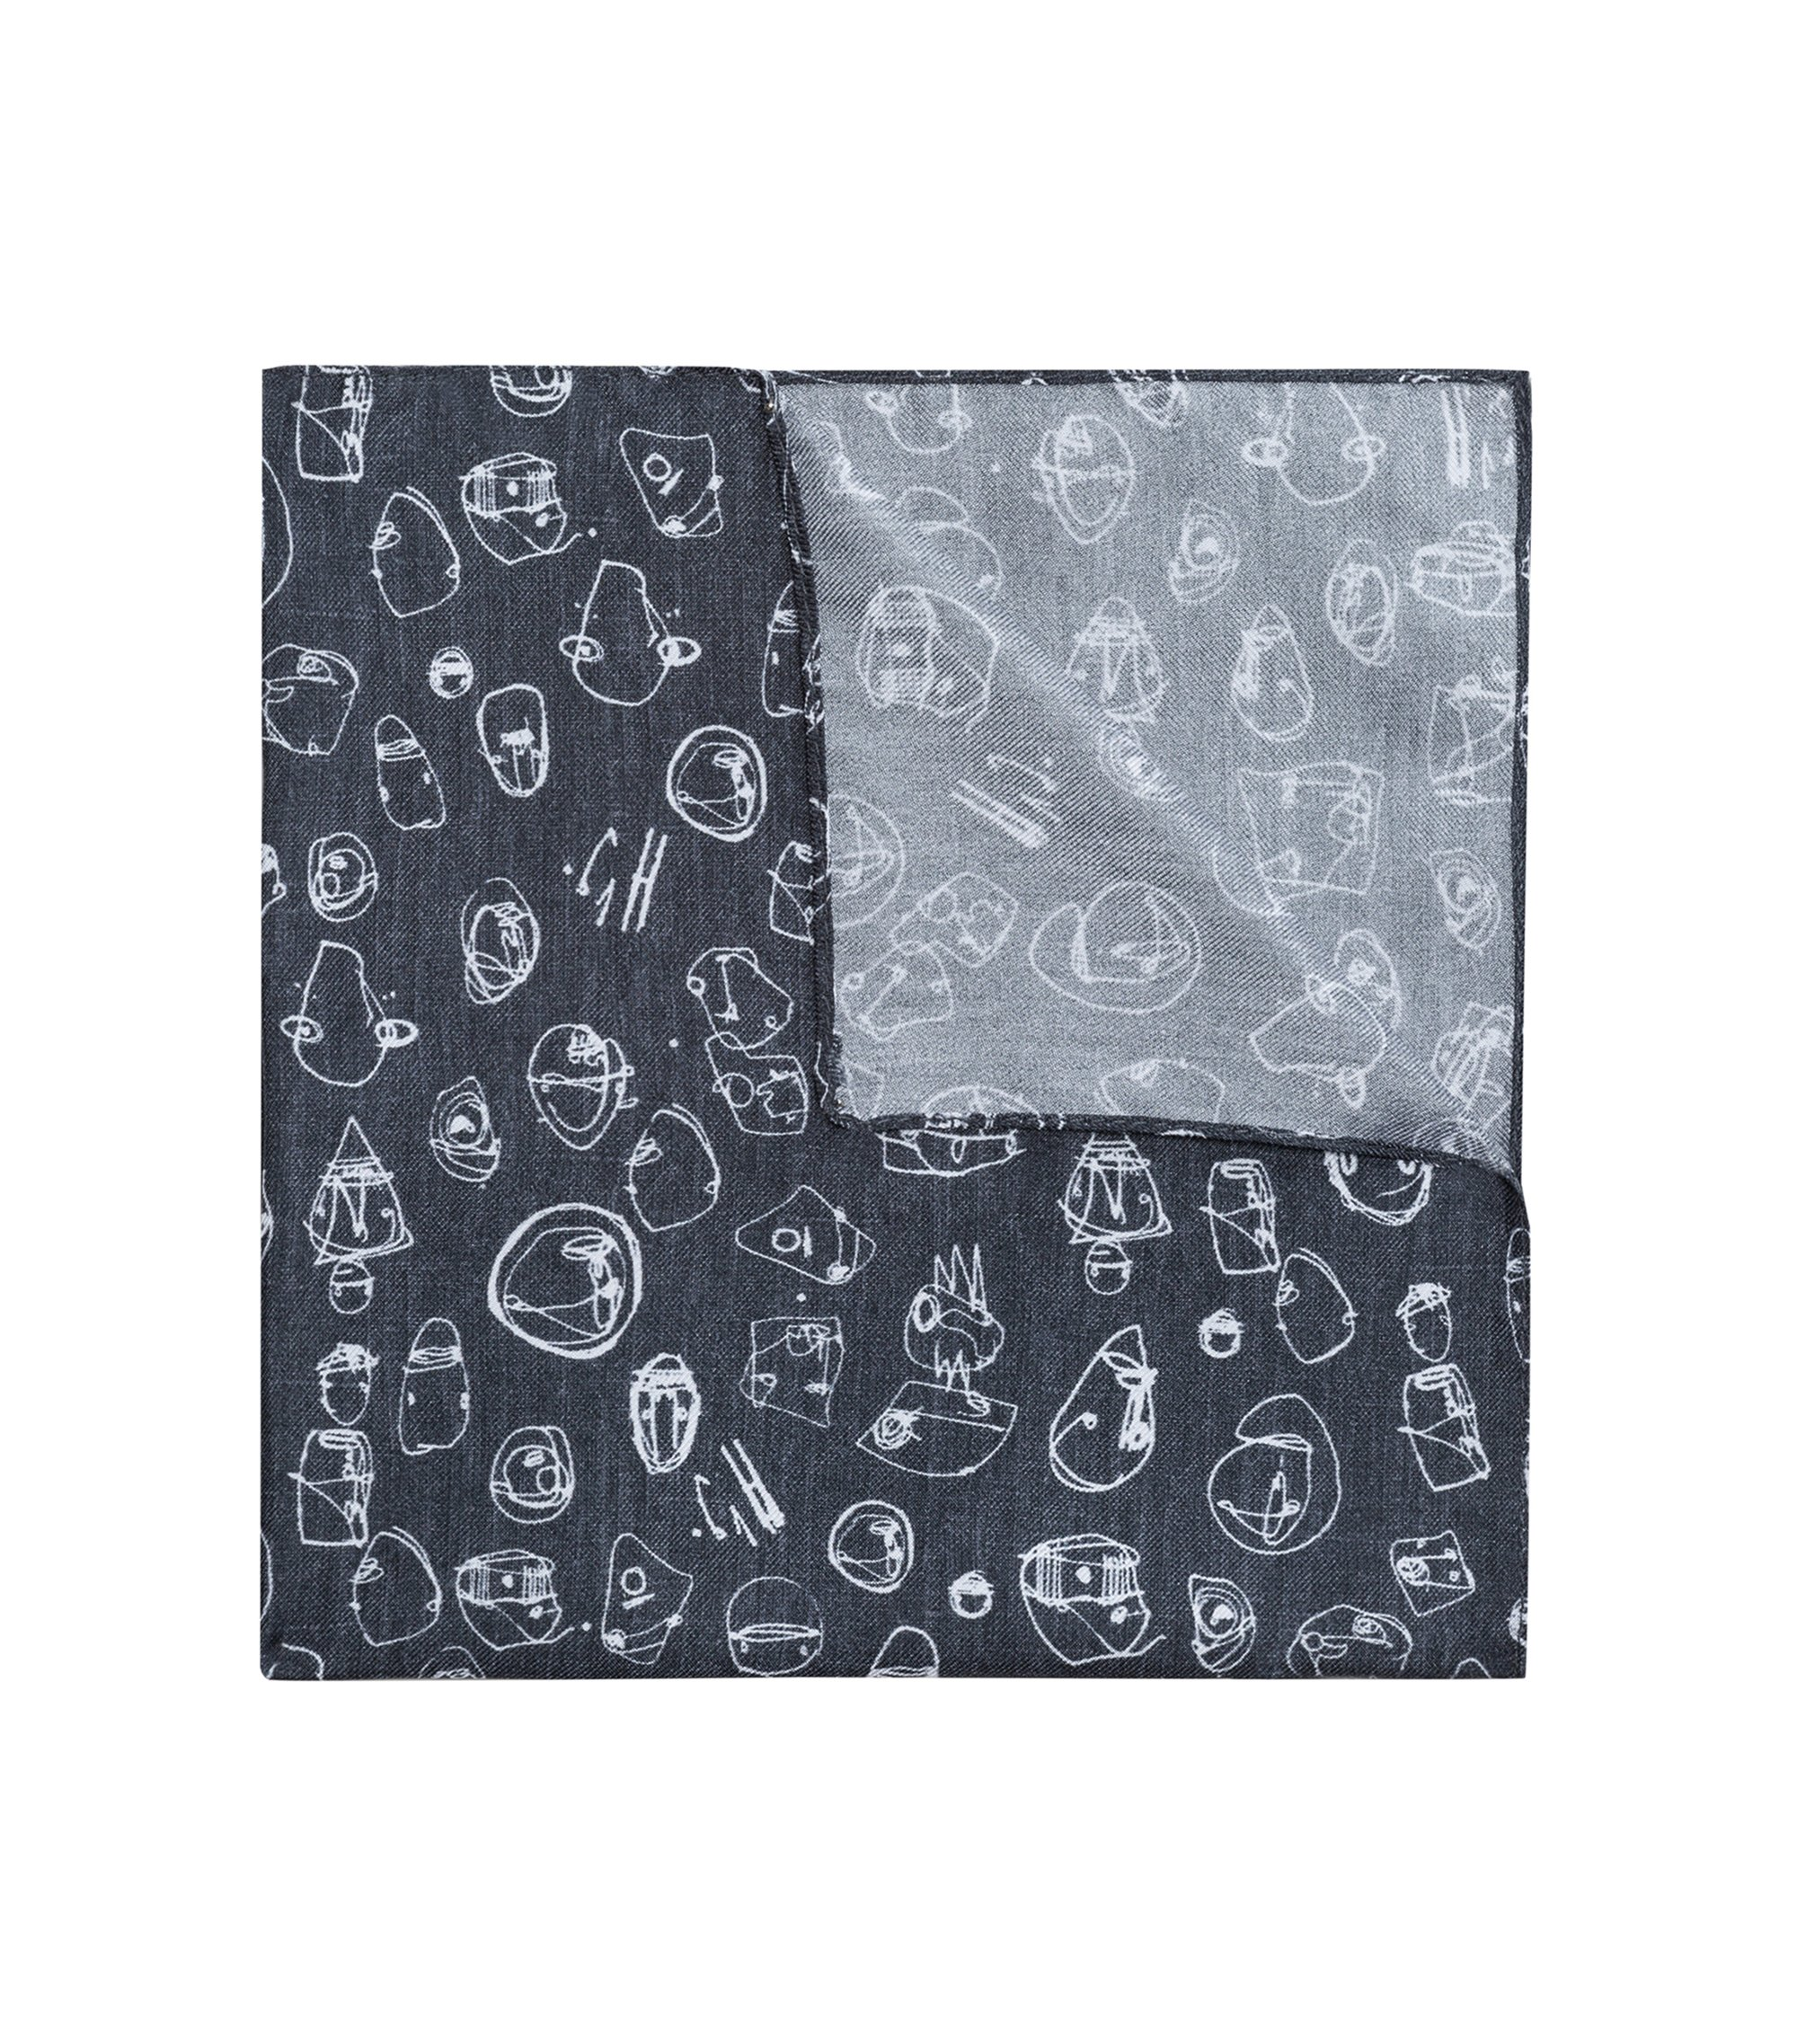 Graffiti-print pocket square in silk twill, Black